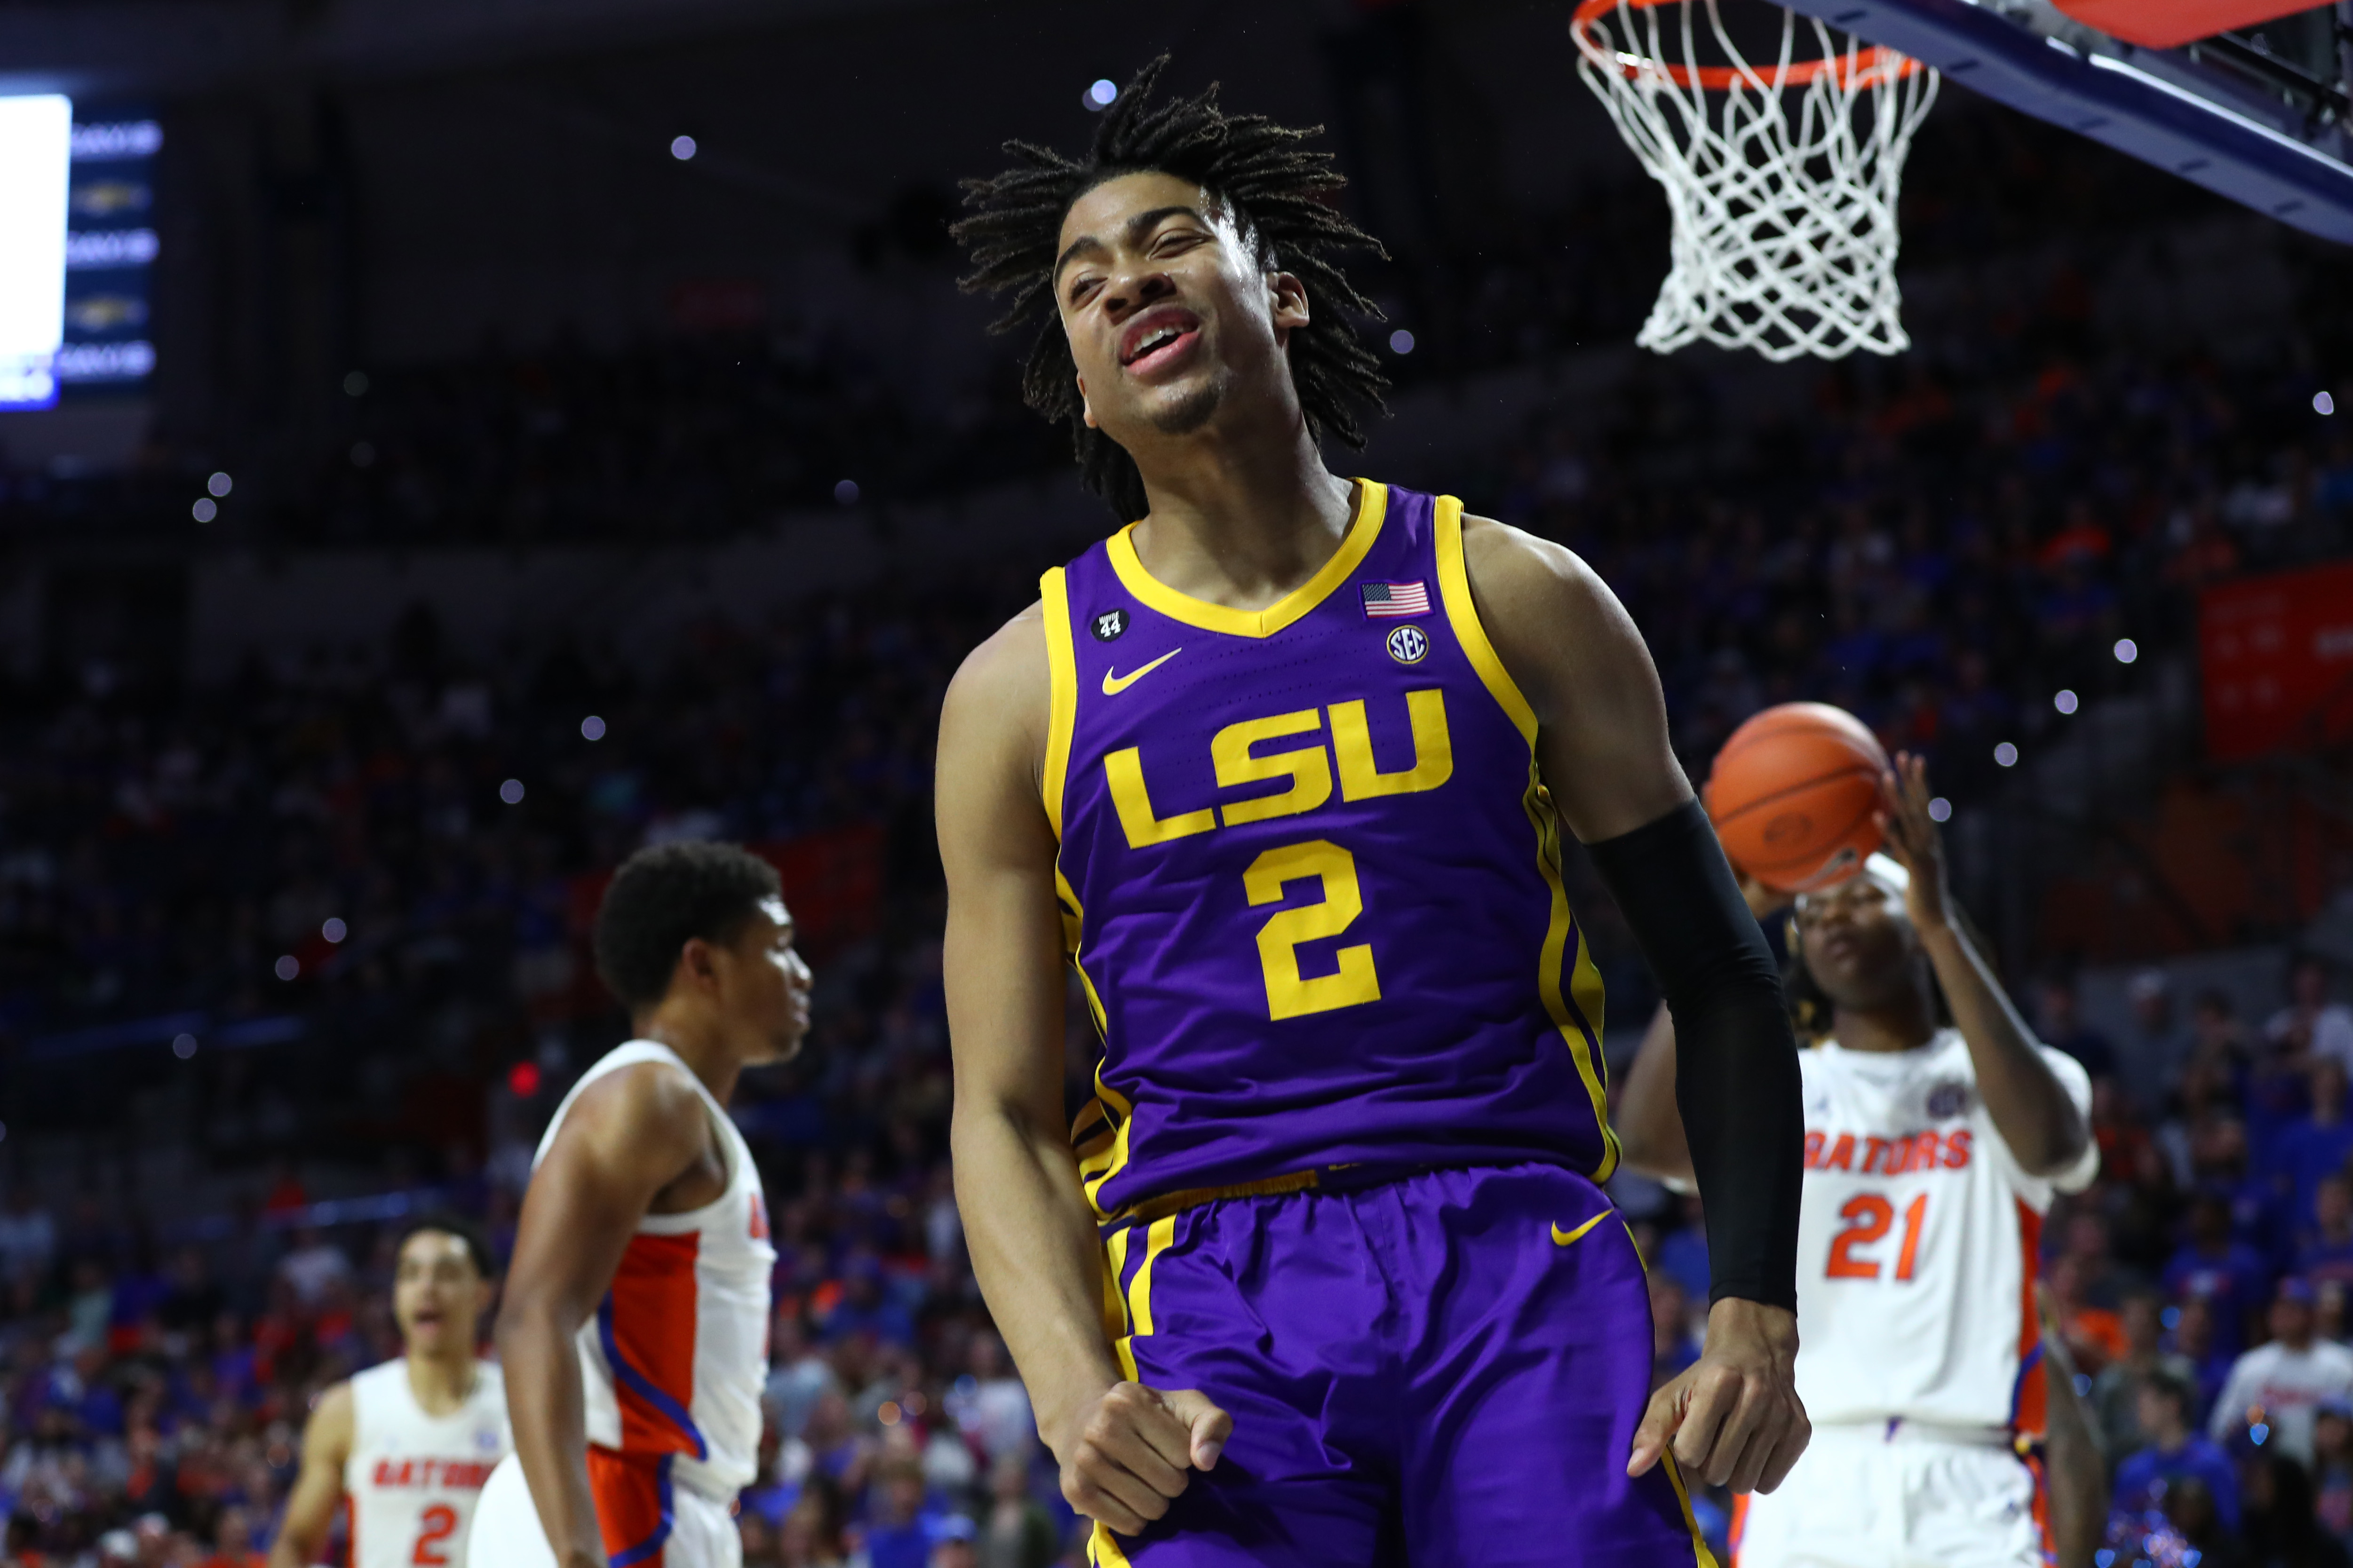 Feb 26, 2020; Gainesville, Florida, USA;LSU Tigers forward Trendon Watford (2) reacts after being fouled against the Florida Gators during the first half at Exactech Arena.